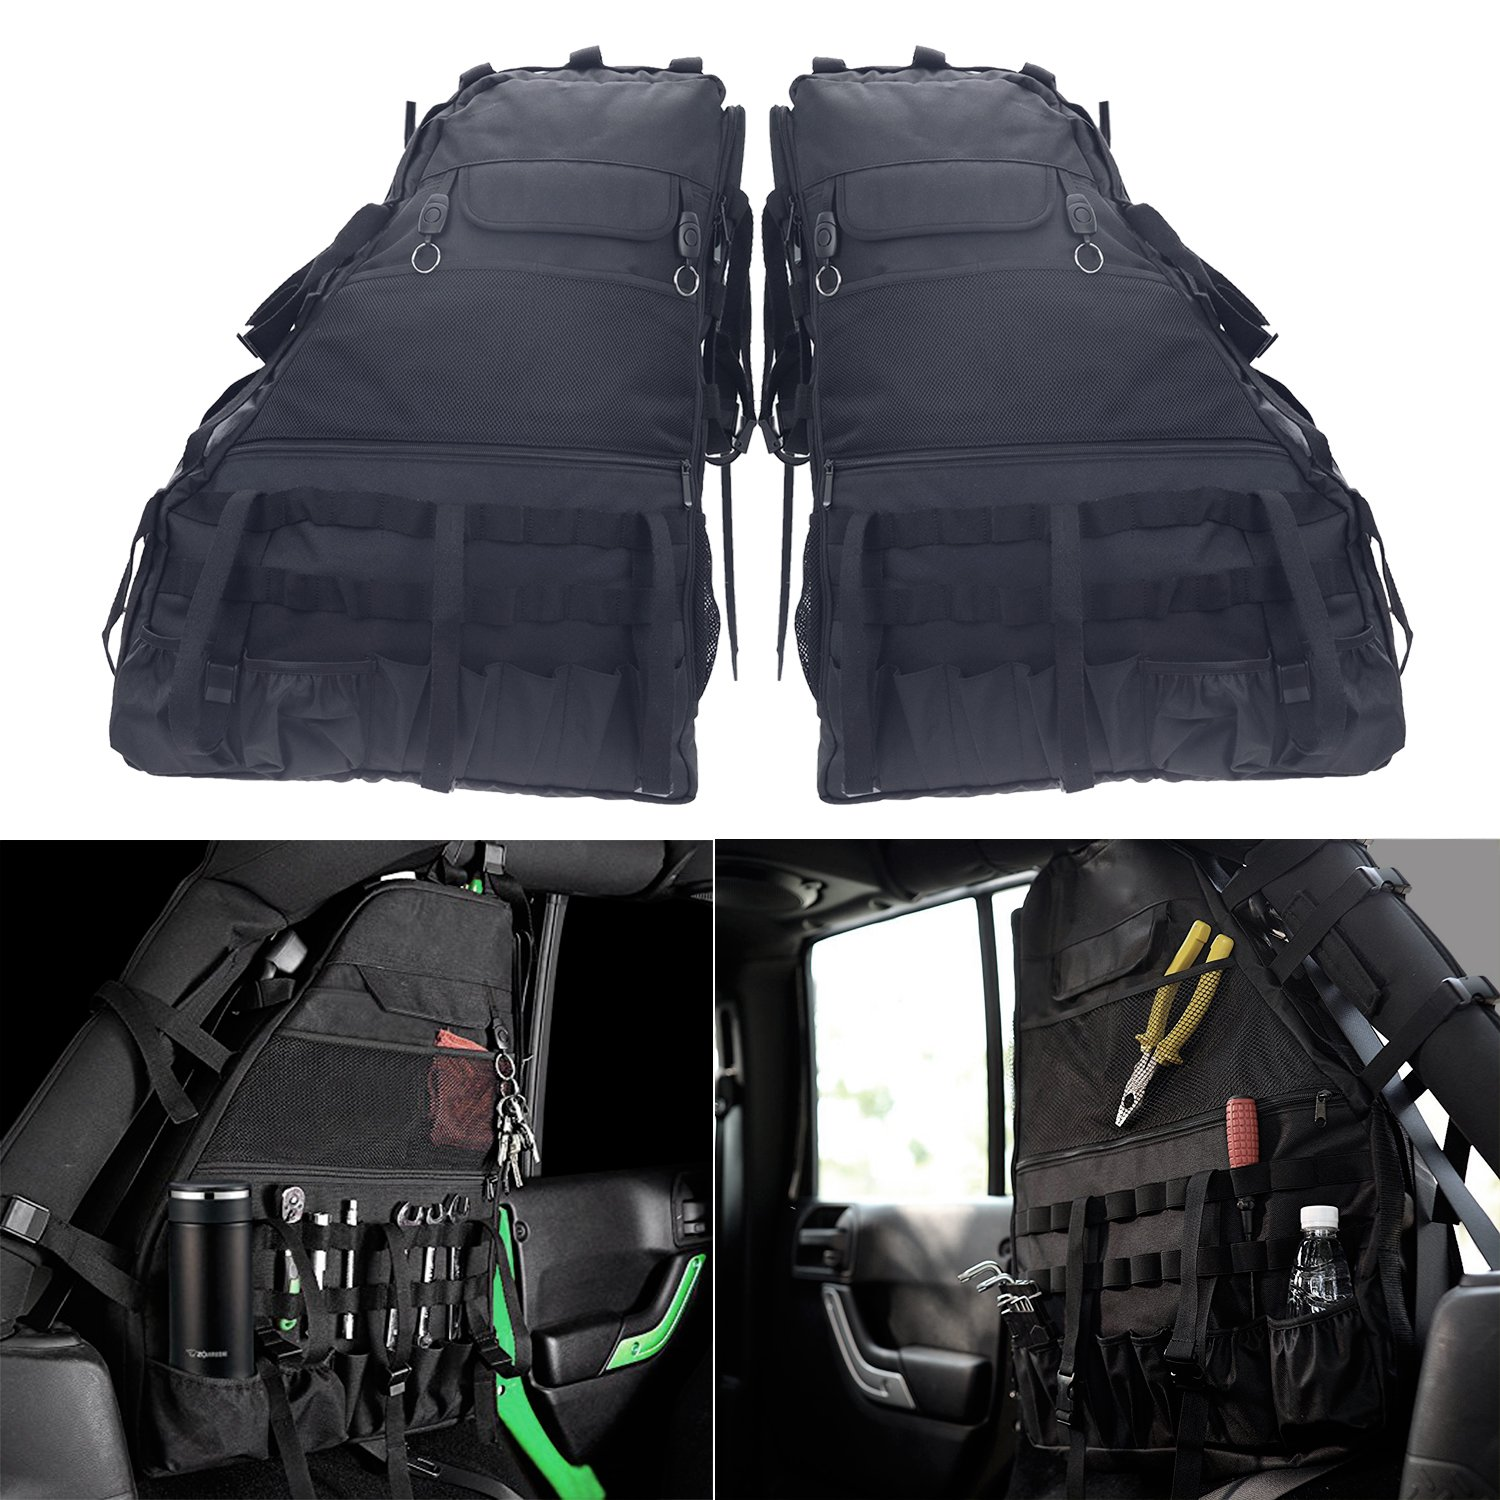 Roll Bar Storage Bag Cage with Multi-Pockets for Jeep Wrangler JK JKU TJ LJ Unlimited 4 Doors - Pack of 2 by Bolaxin